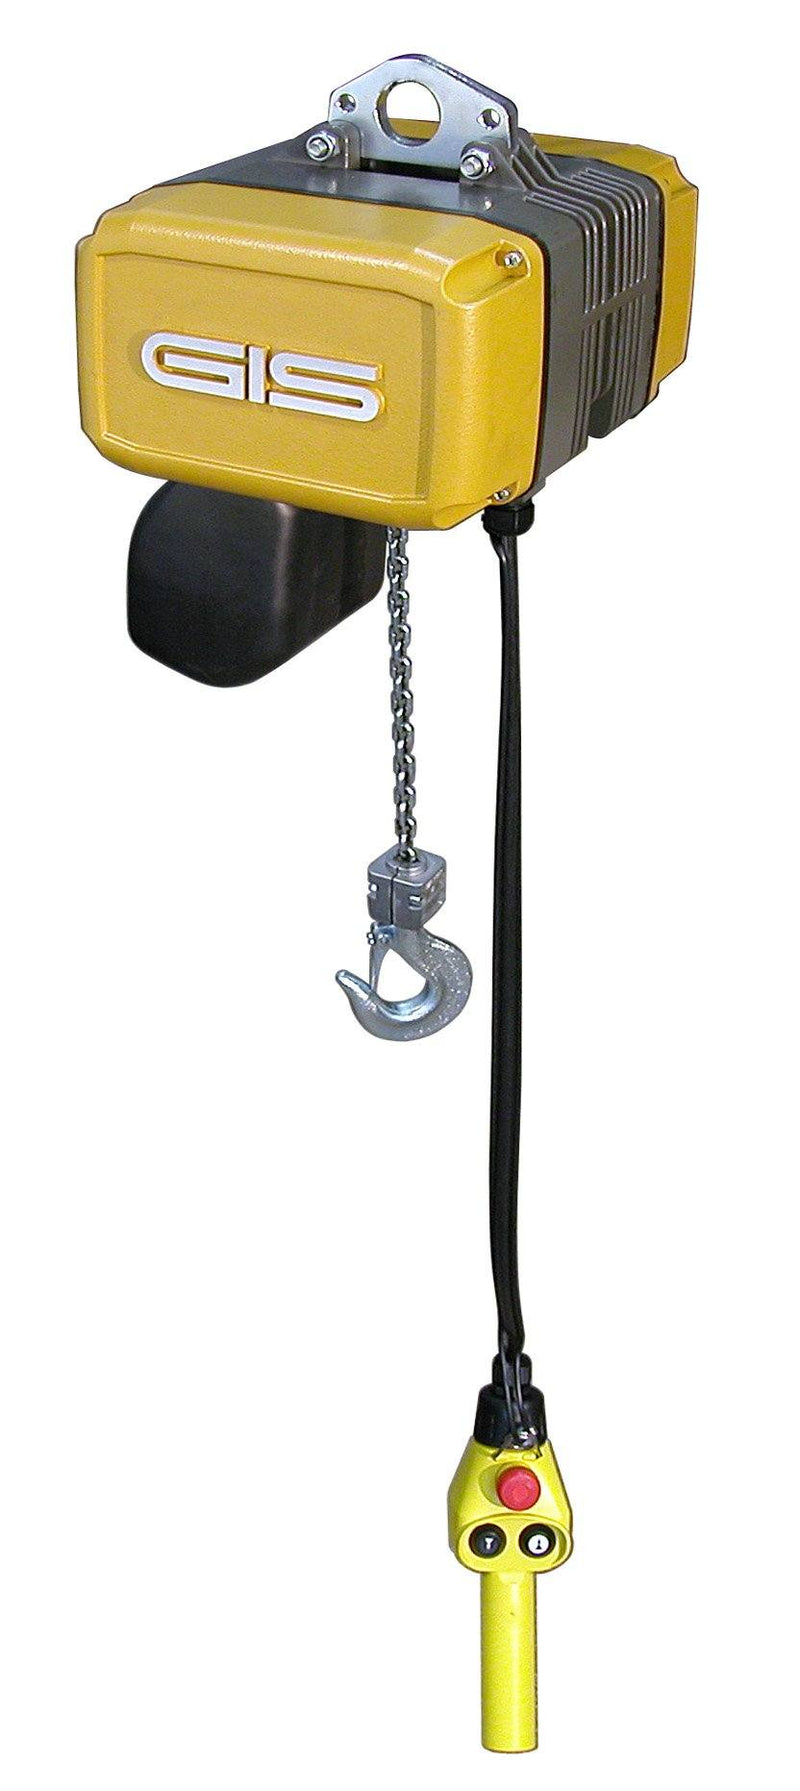 GCH_GIS_Hoist.Single_fall_800x?v=1508243860 gis gp new electric chain hoist lift turn move gis hoist wiring diagram at crackthecode.co